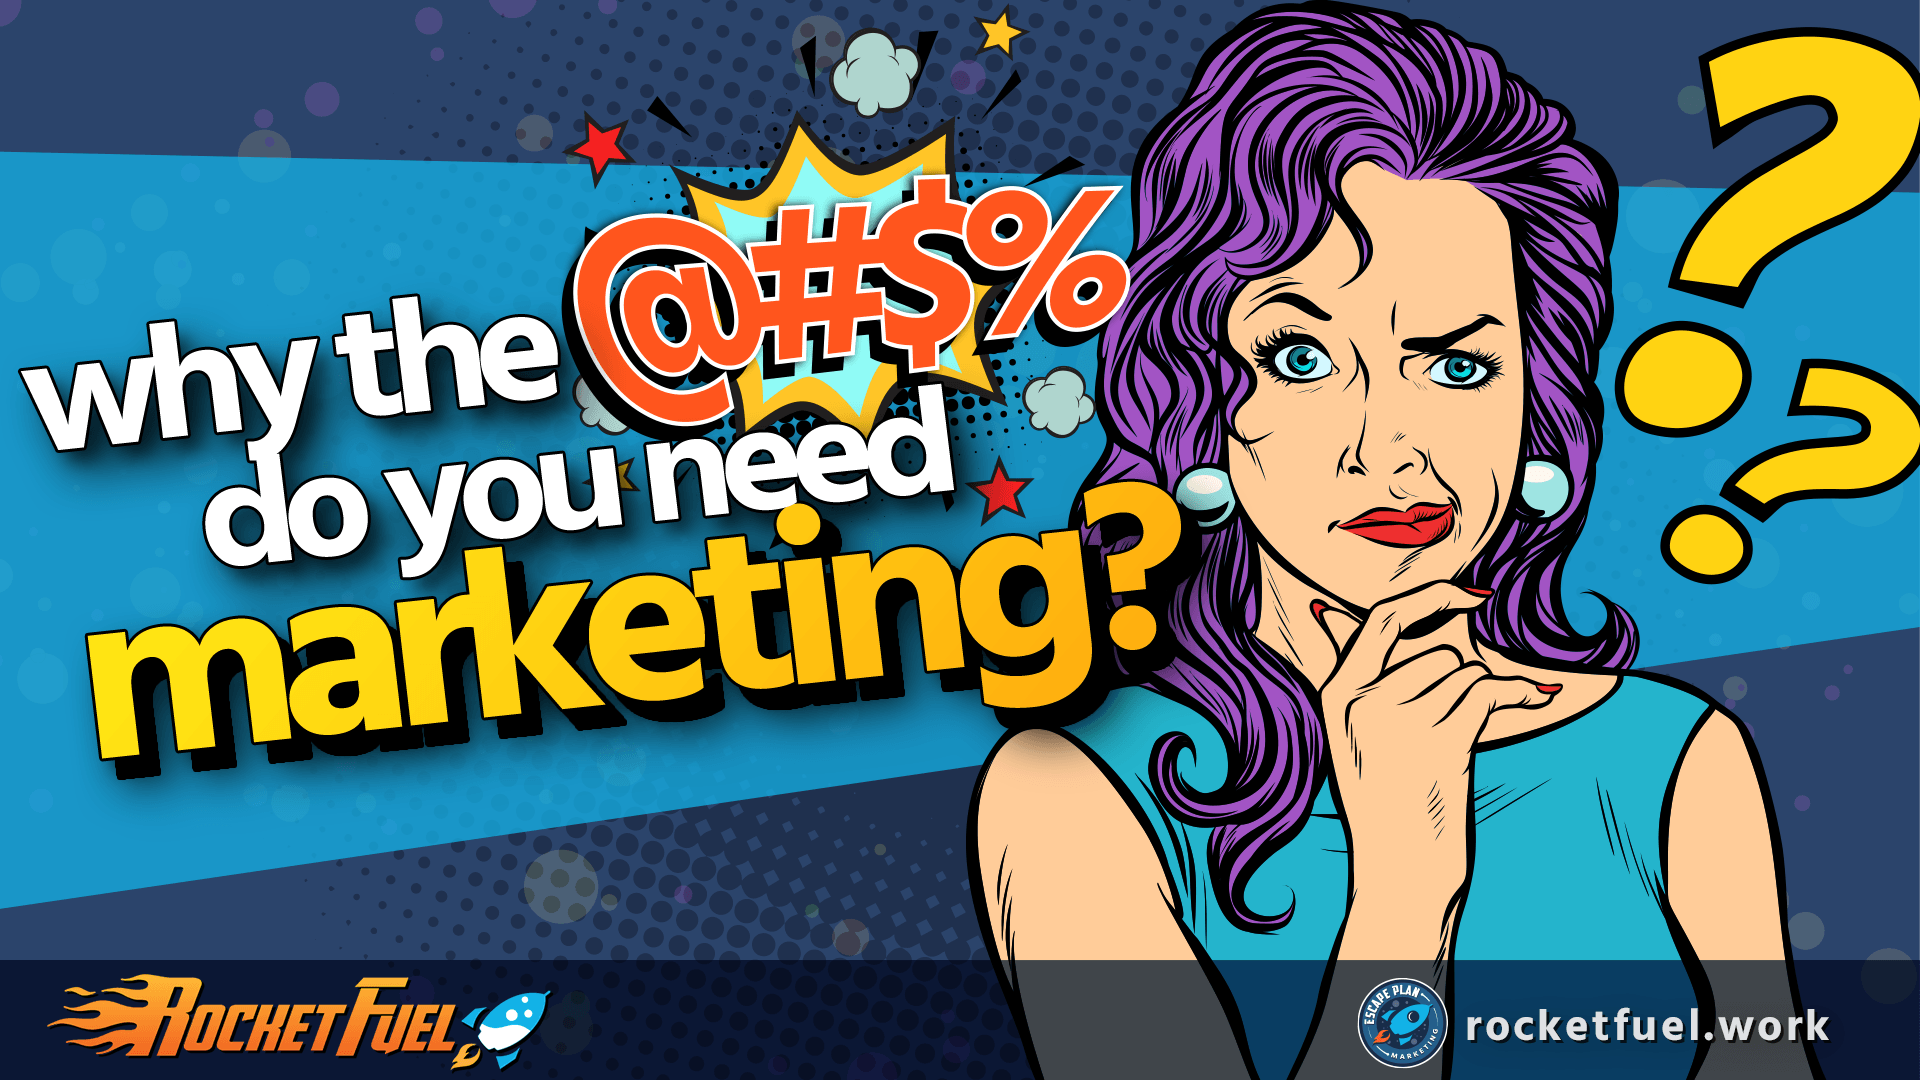 Why Do You Need Marketing?